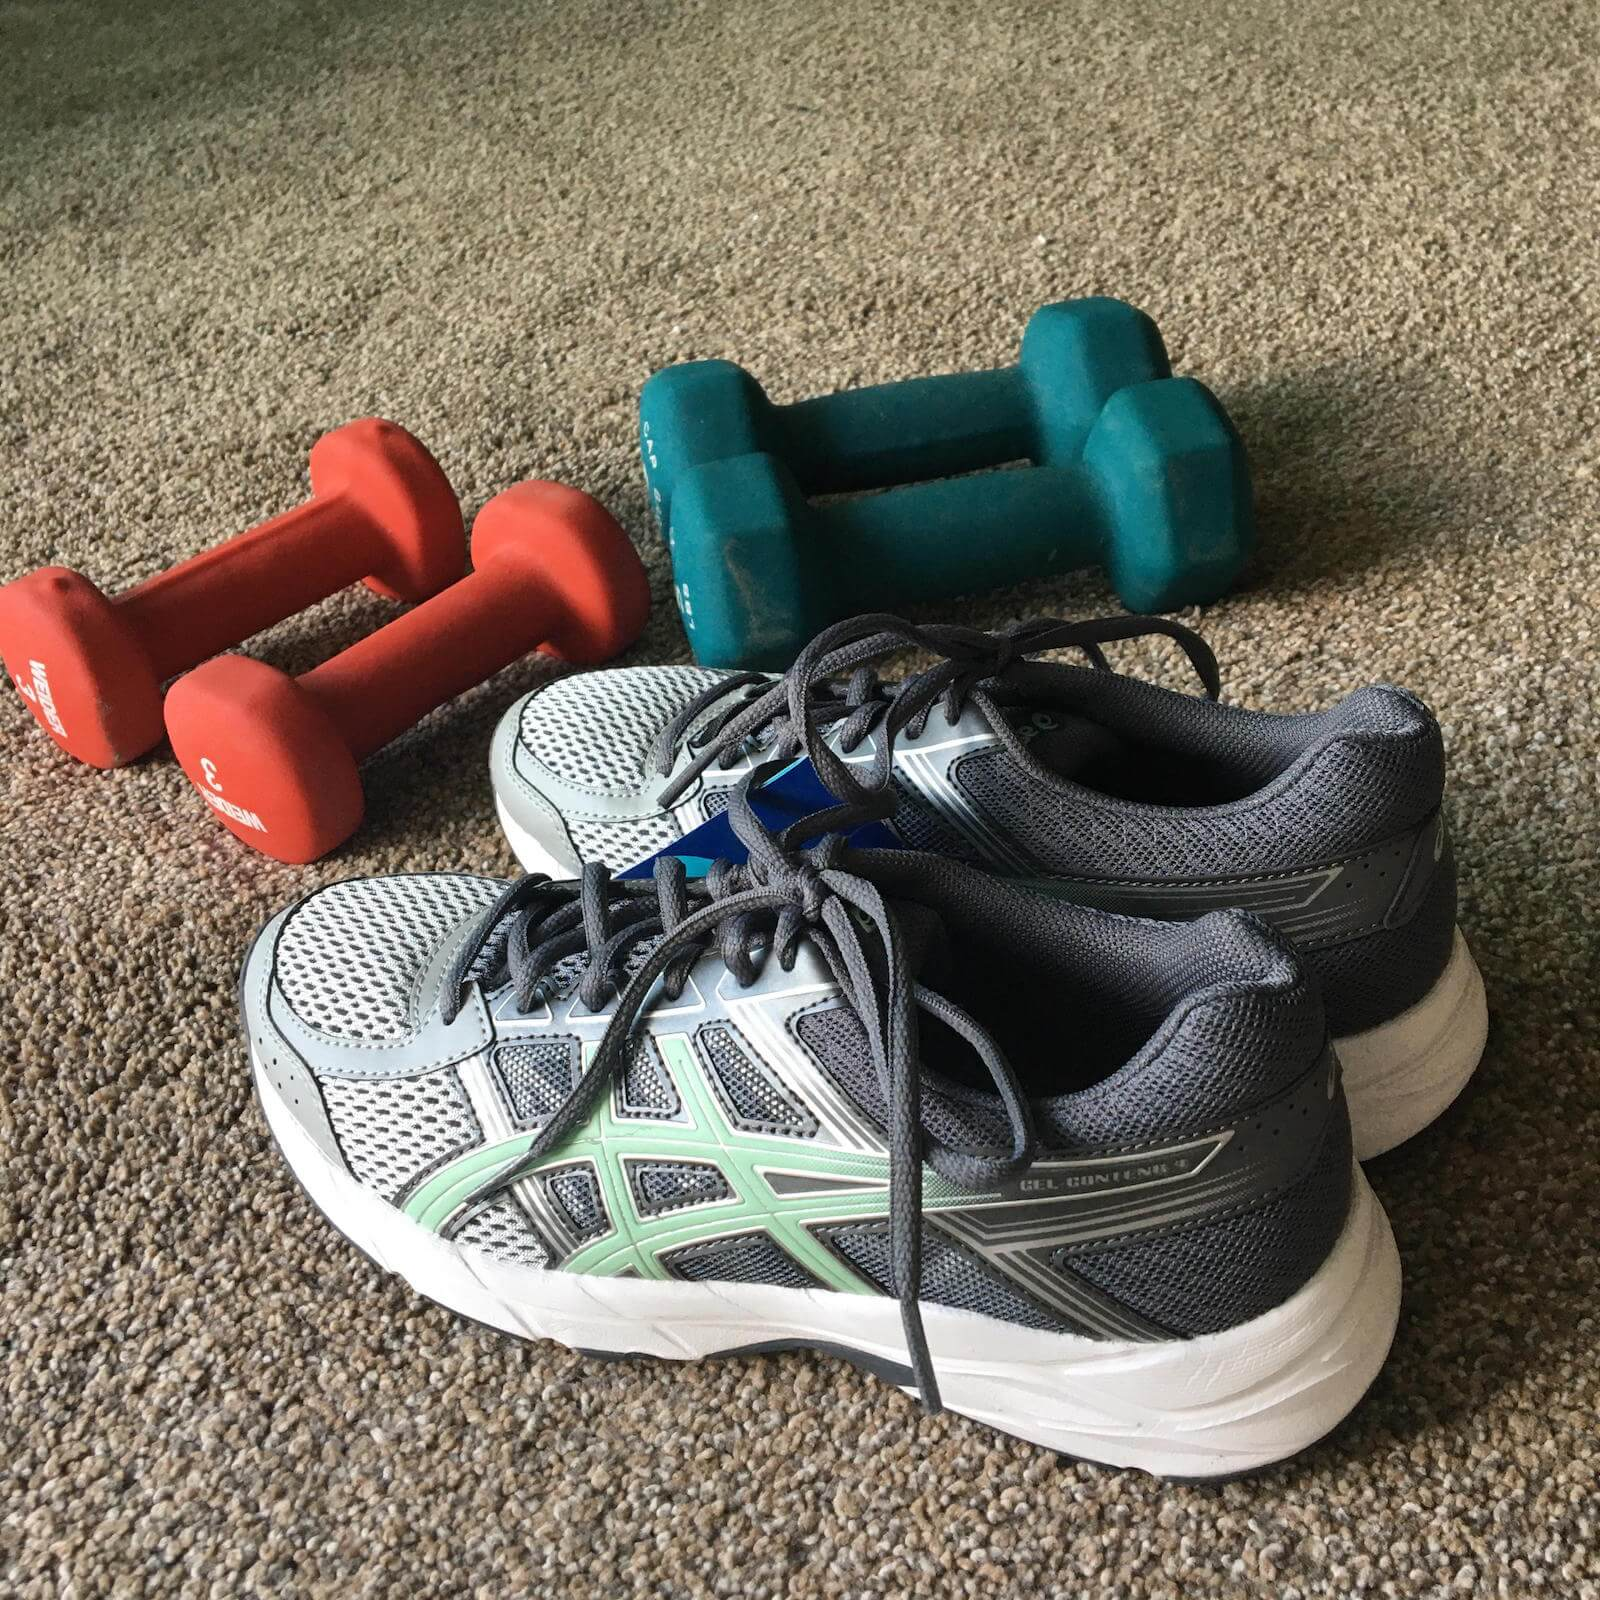 sneakers and free weights